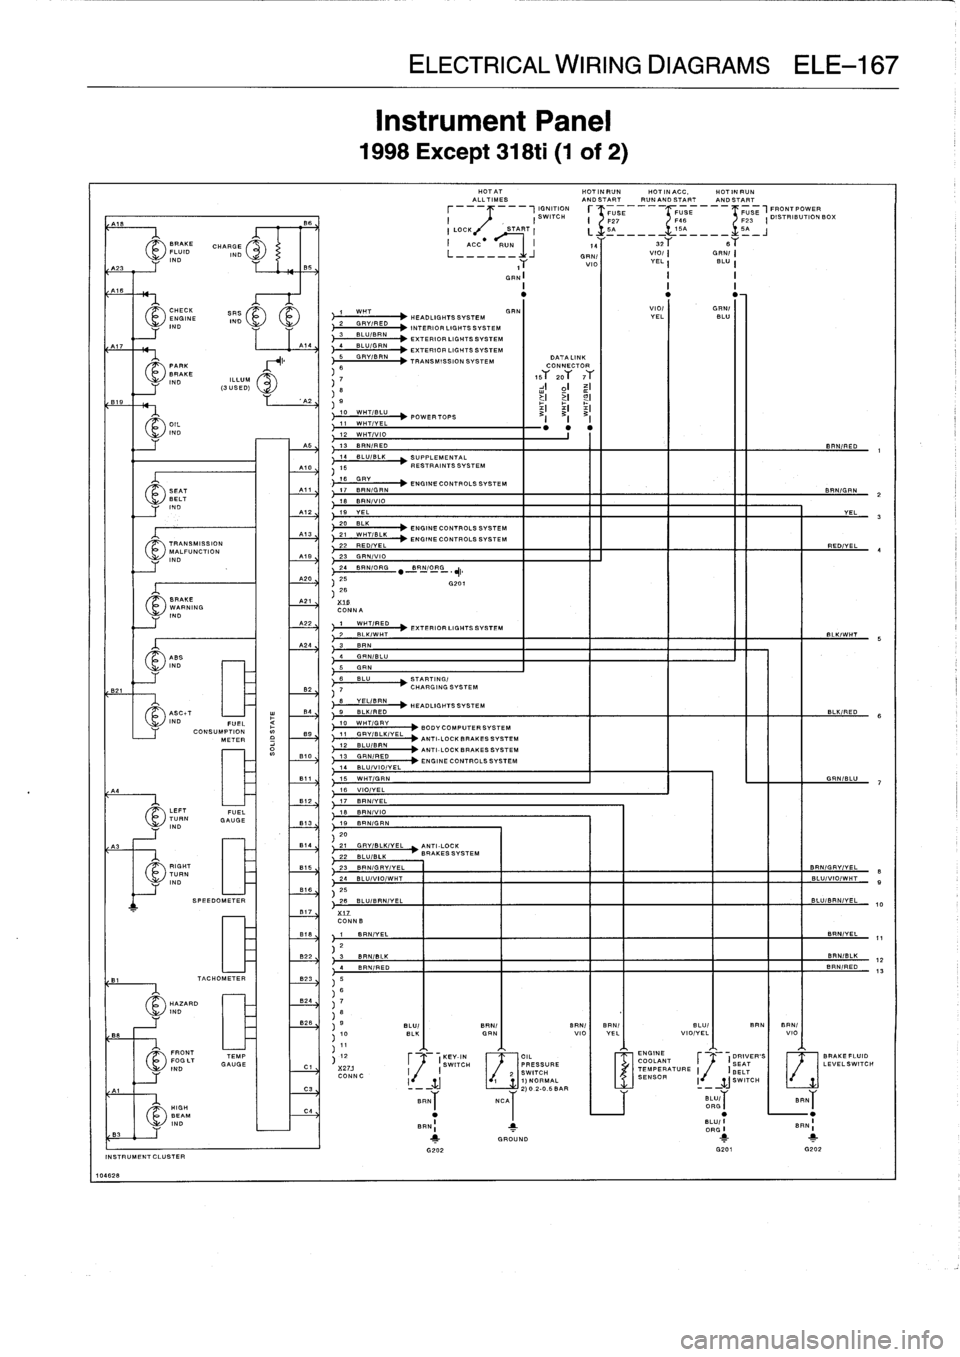 Wiring Diagram Bmw 328I 1998 E36 ndash 1998 Bmw 328I E36 Dme